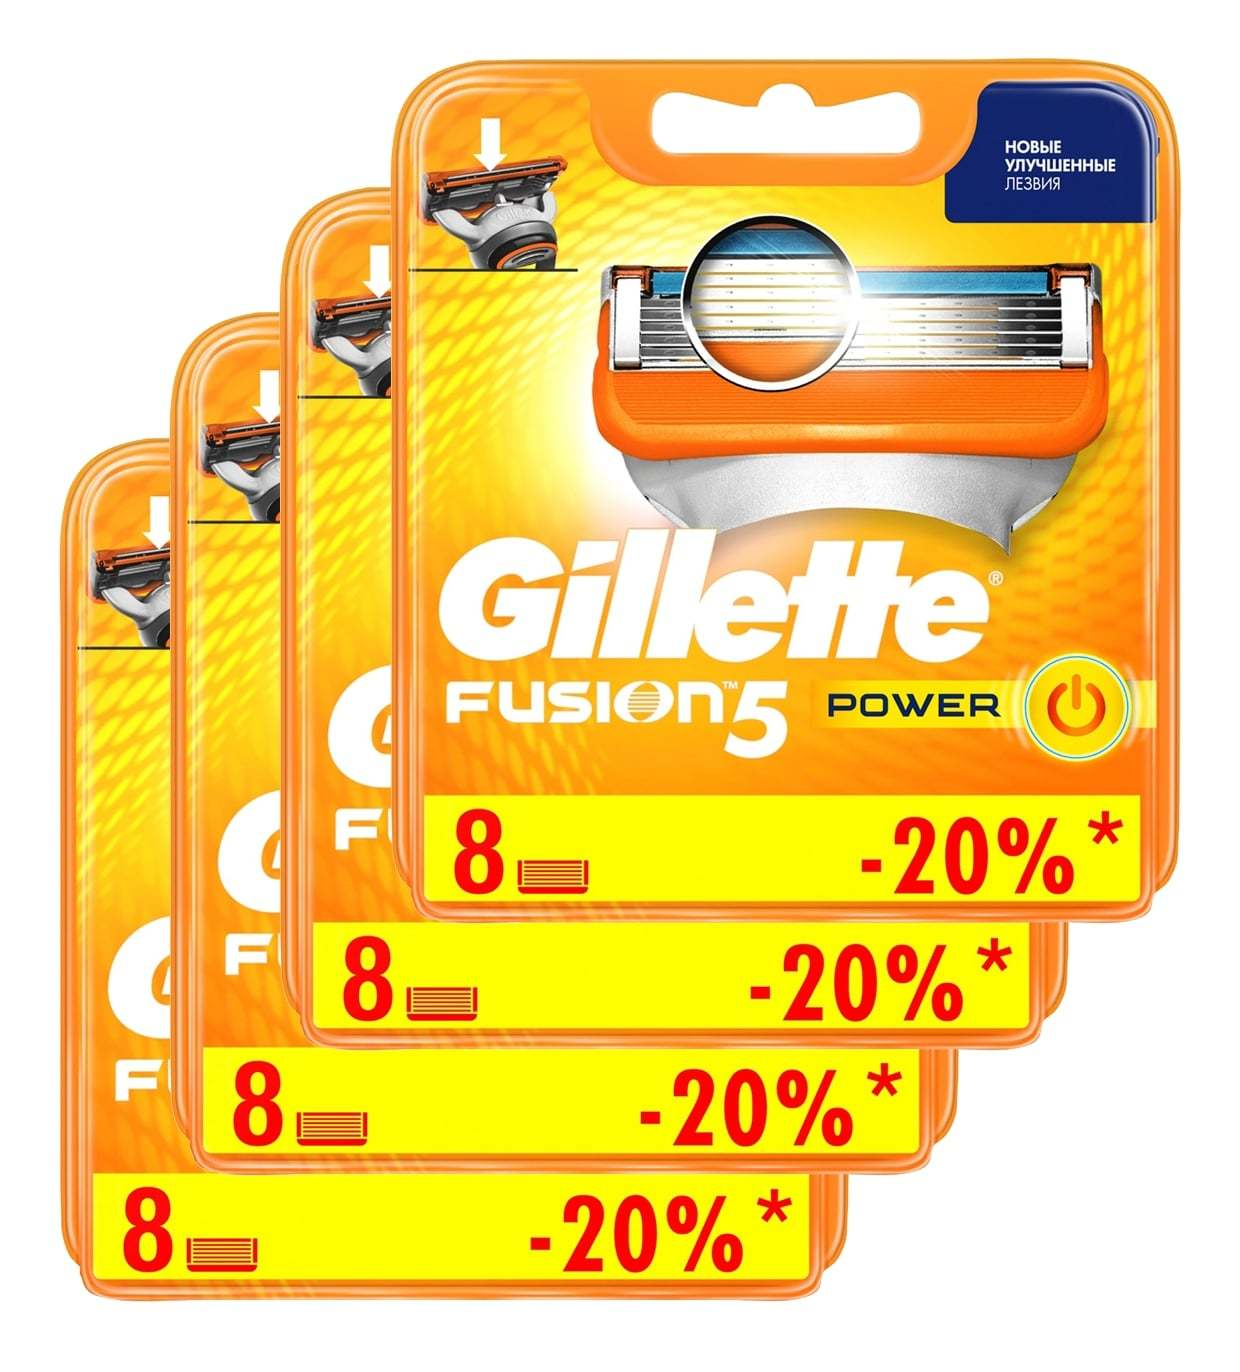 Gillette Fusion Power комплект (4х8) 32шт. (Цена за 1 пачку 1319р.)